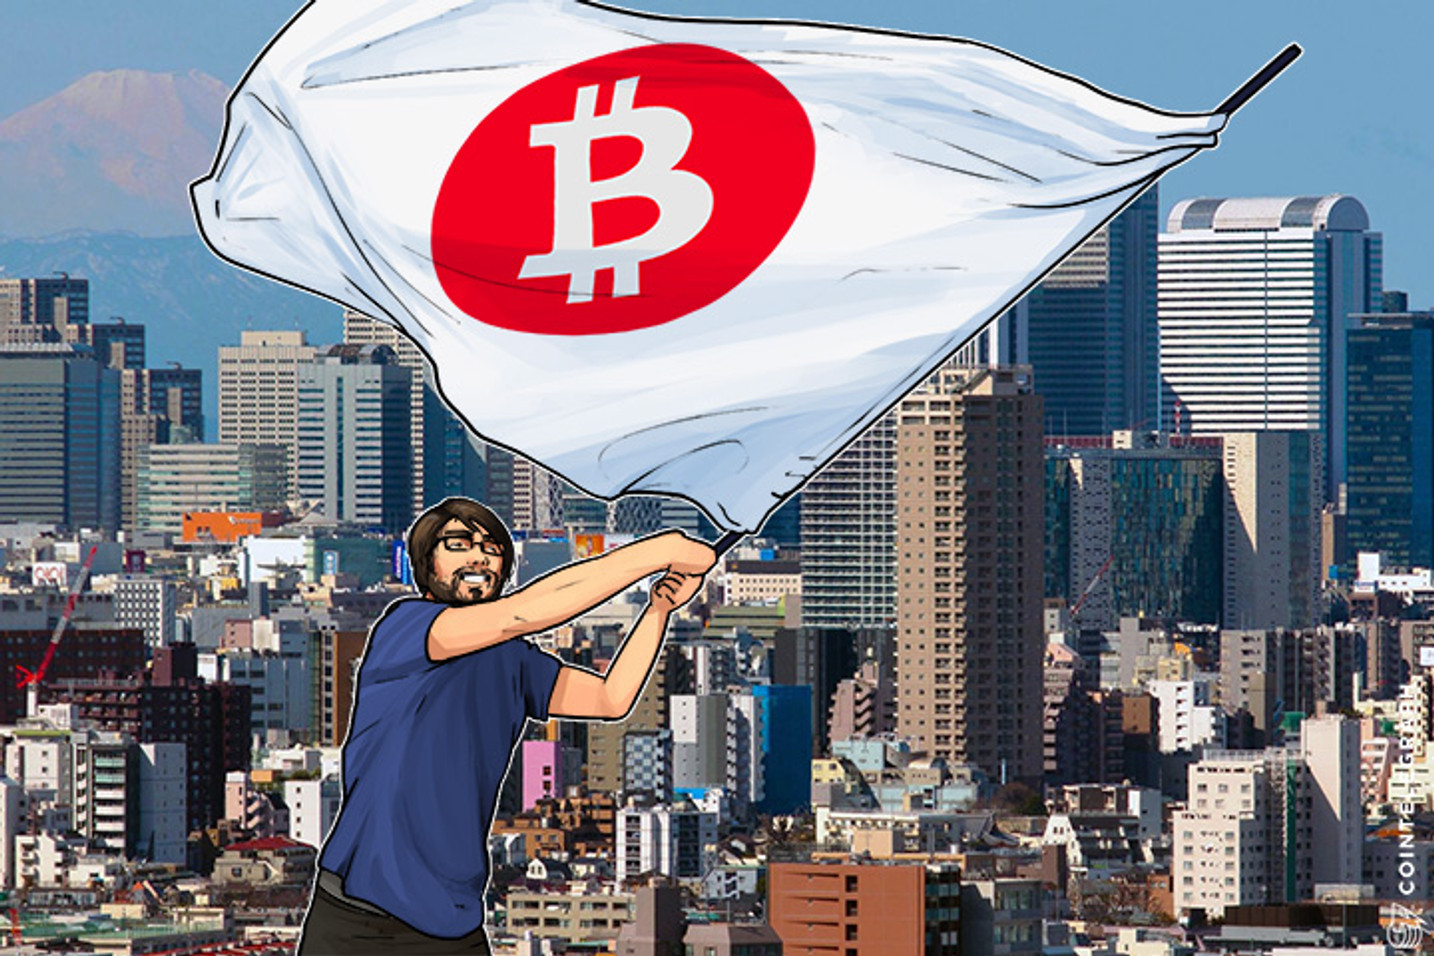 Japan Officially Recognizes Bitcoin and Digital Currencies as Money